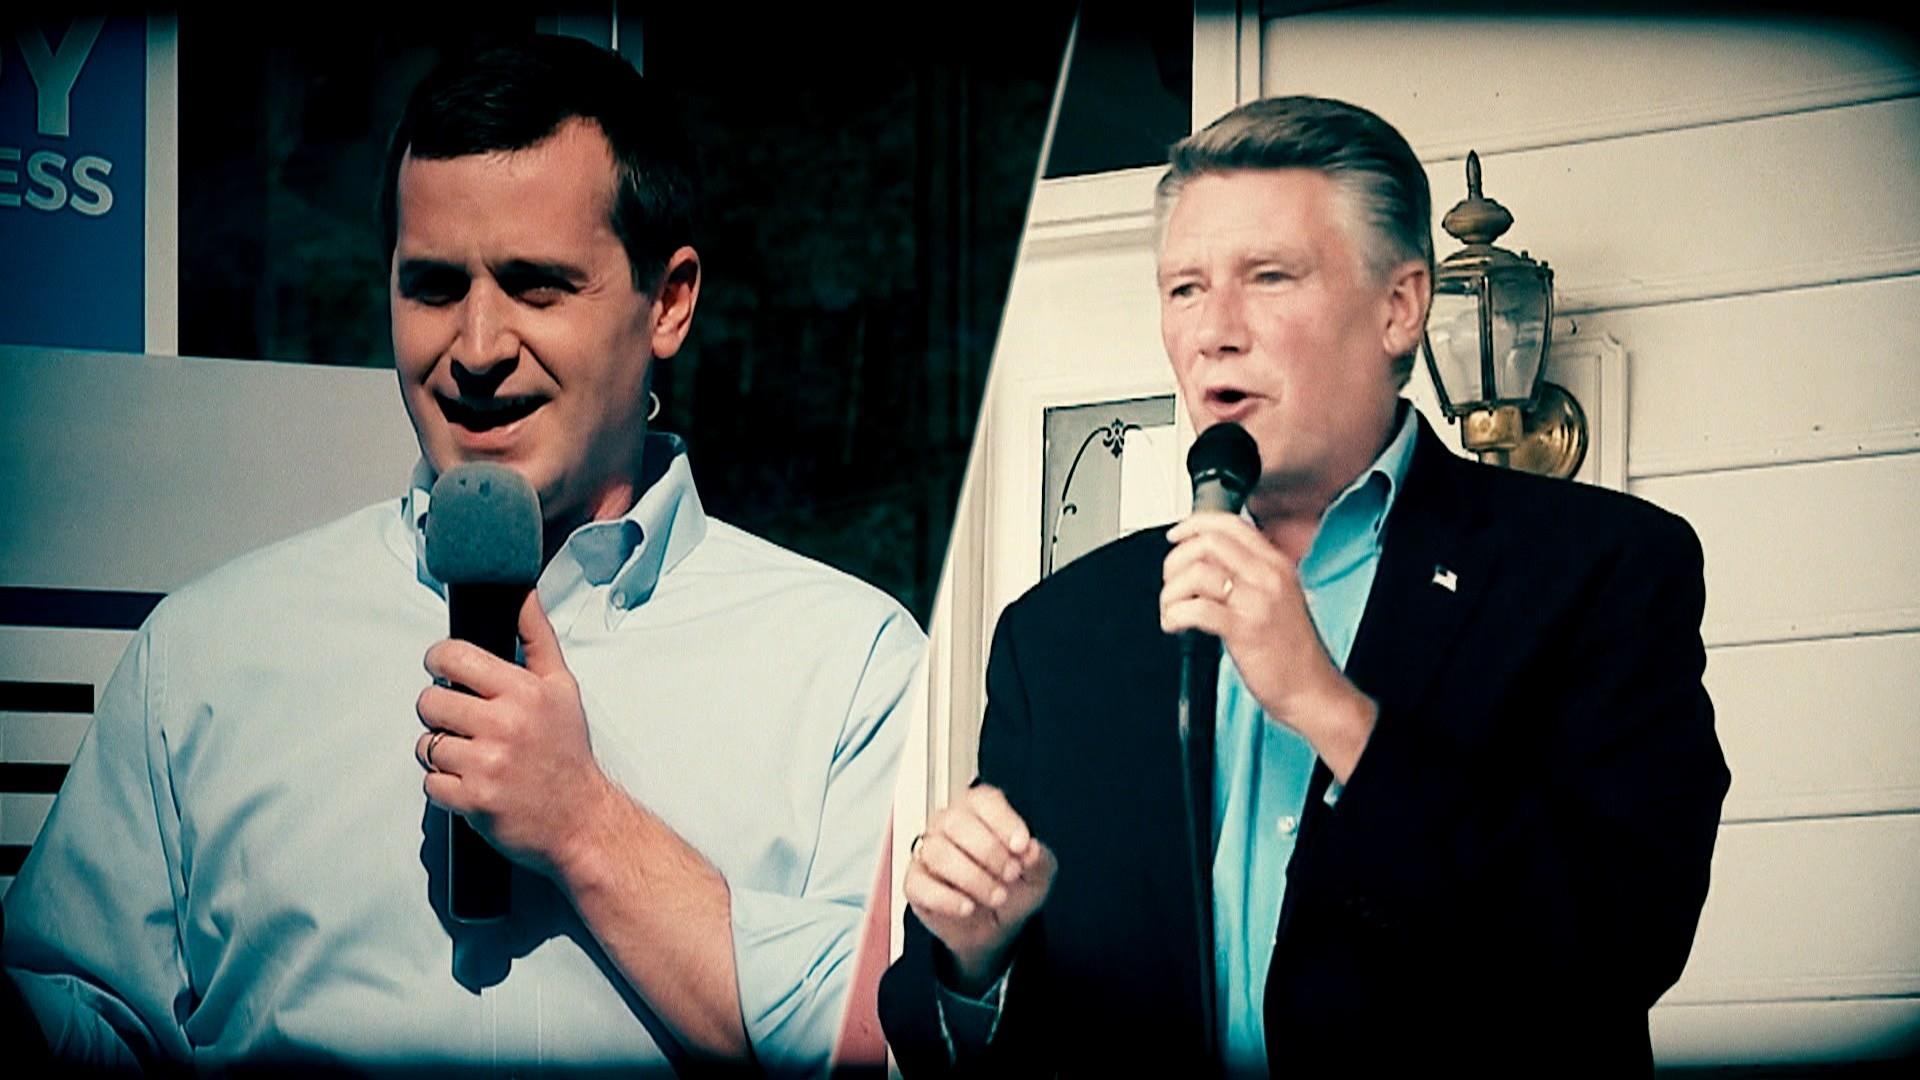 New election ordered in North Carolina race after possible fraud